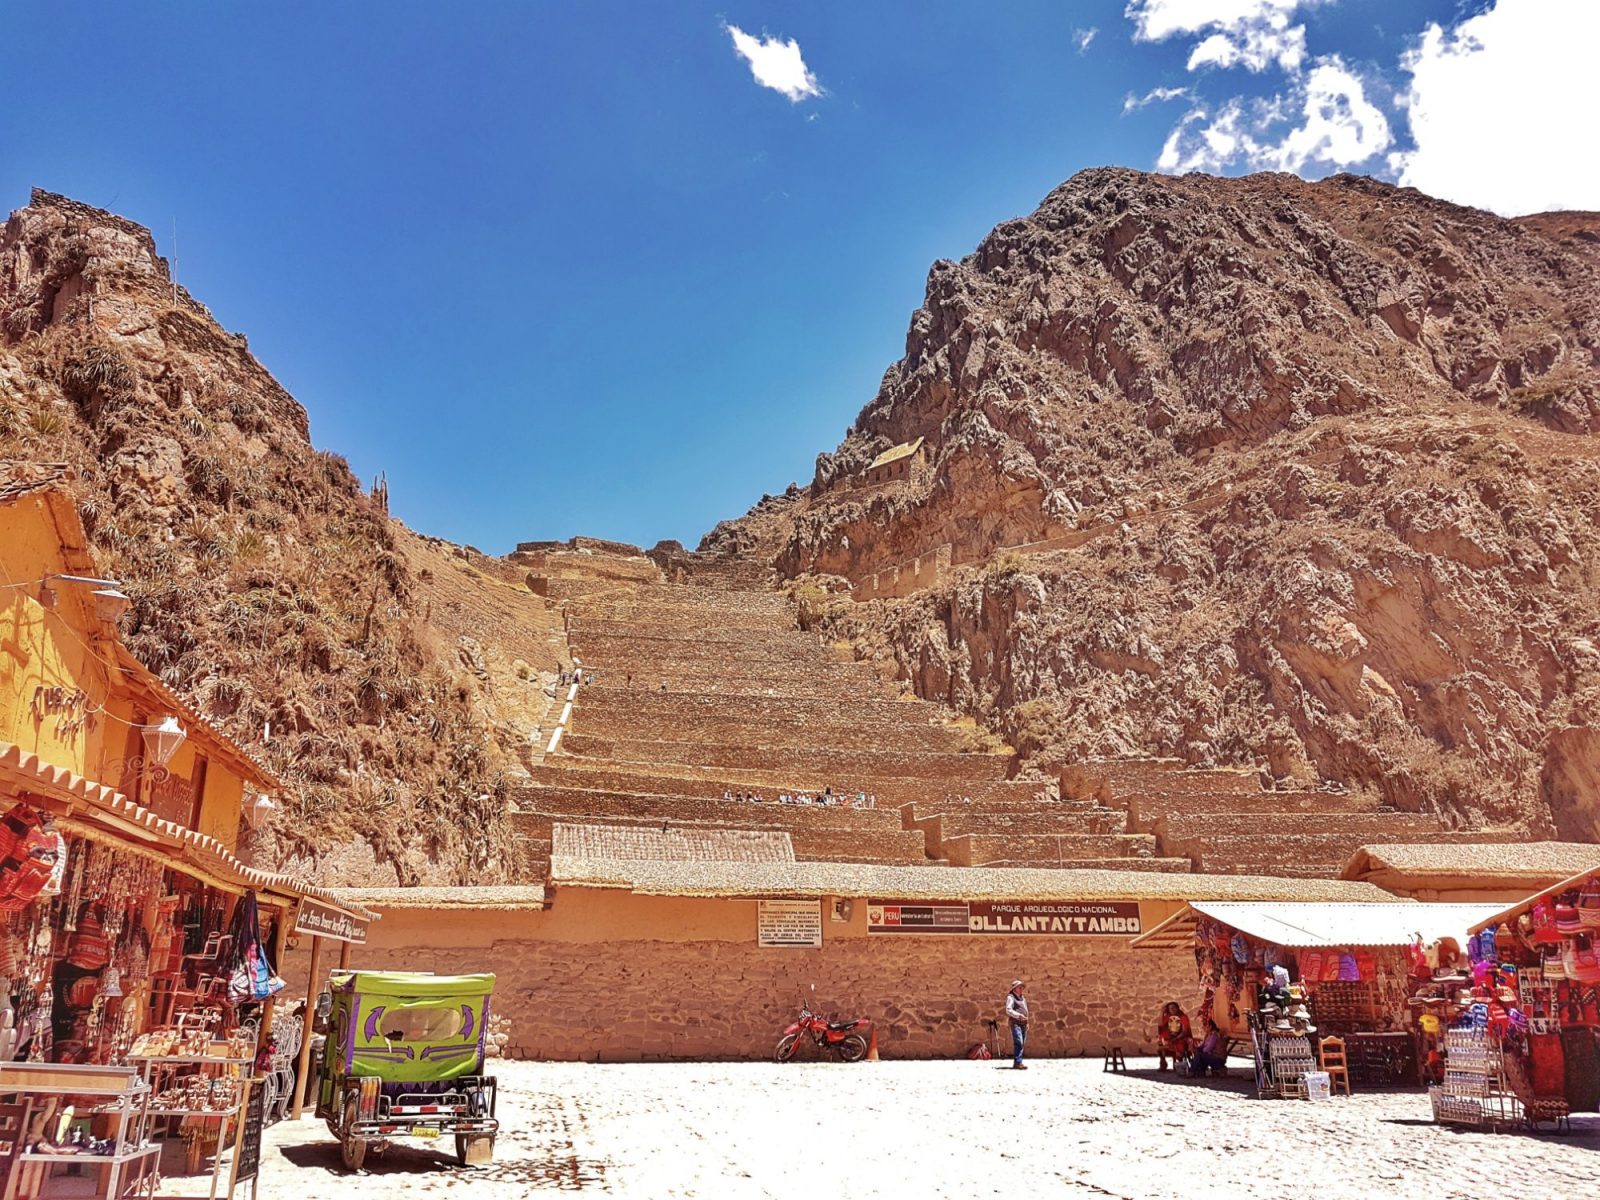 """<img src=""""images/"""" width=""""800"""" height=""""600"""" alt=""""sacred valley - 20171006 103936 01720073575 - Peru: Town Hopping The Sacred Valley"""">"""